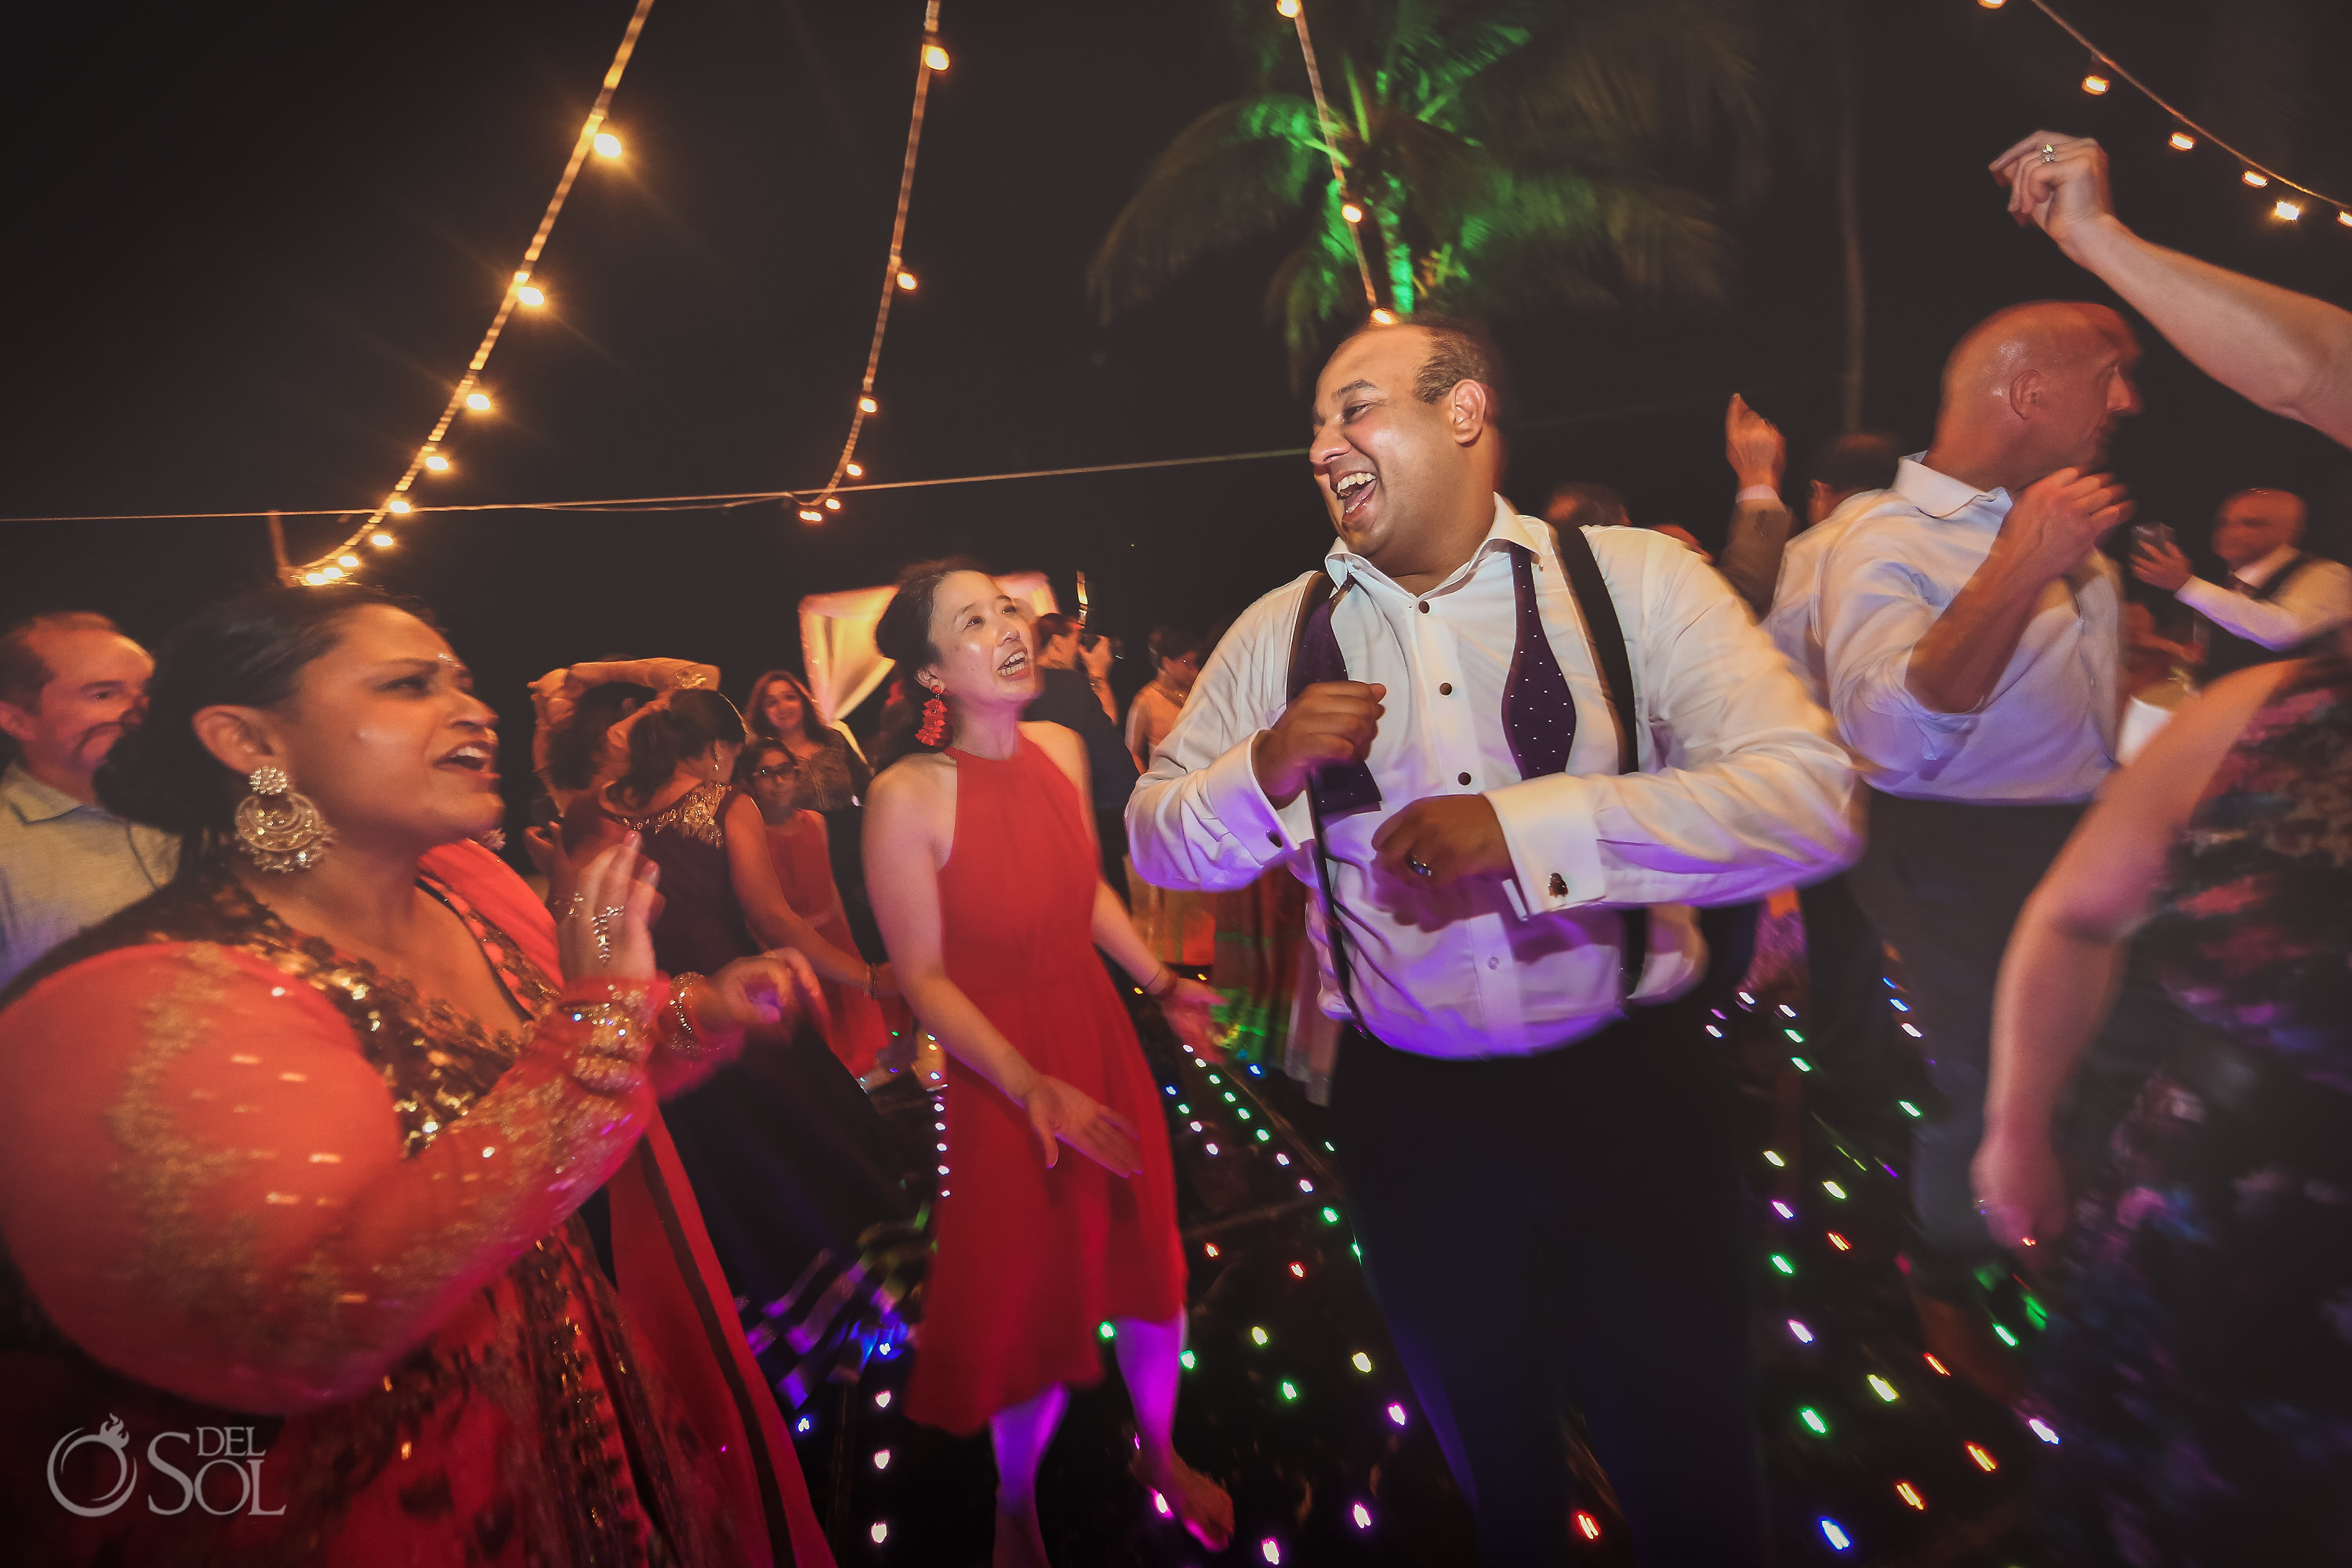 Dreams Tulum Indian wedding guests dancing